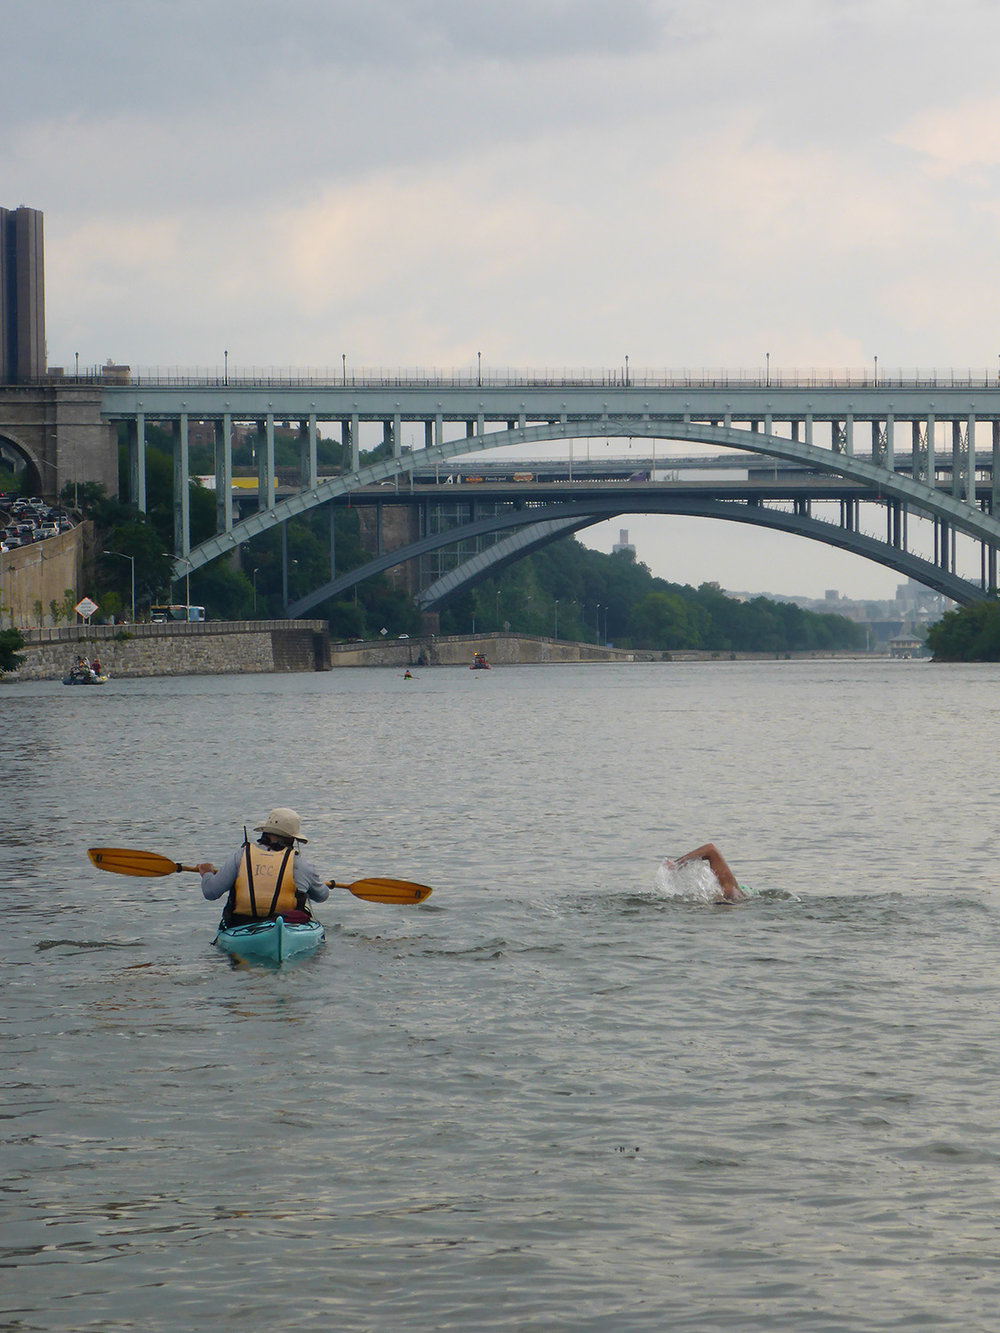 Swimming towards the High Bridge and the Alexander Hamilton Bridge in the Harlem River